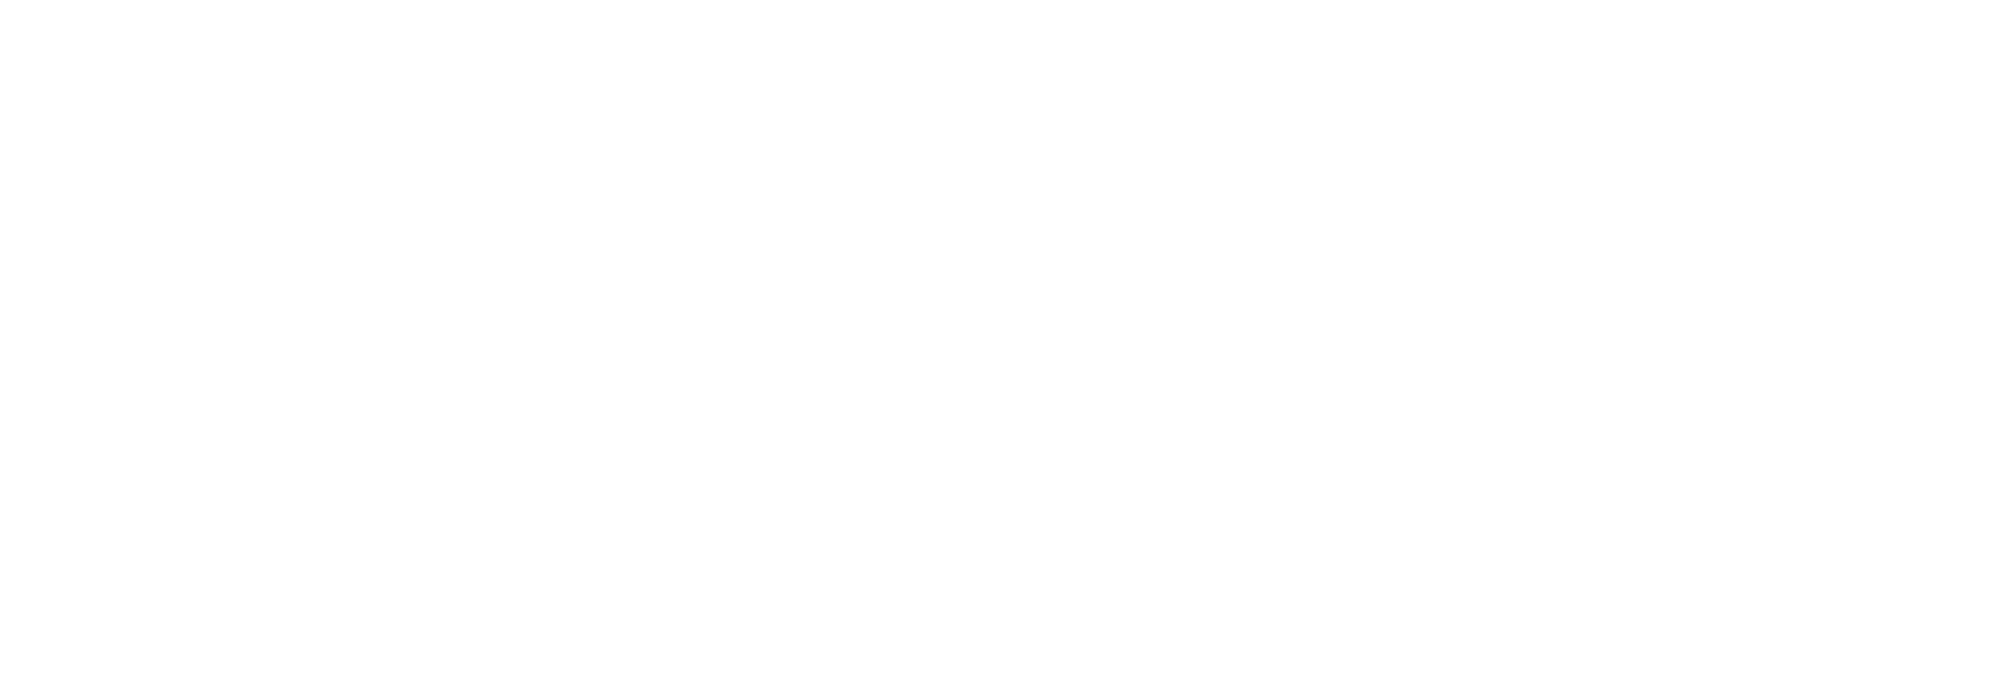 Kids Time – Every Sunday live at 10:30